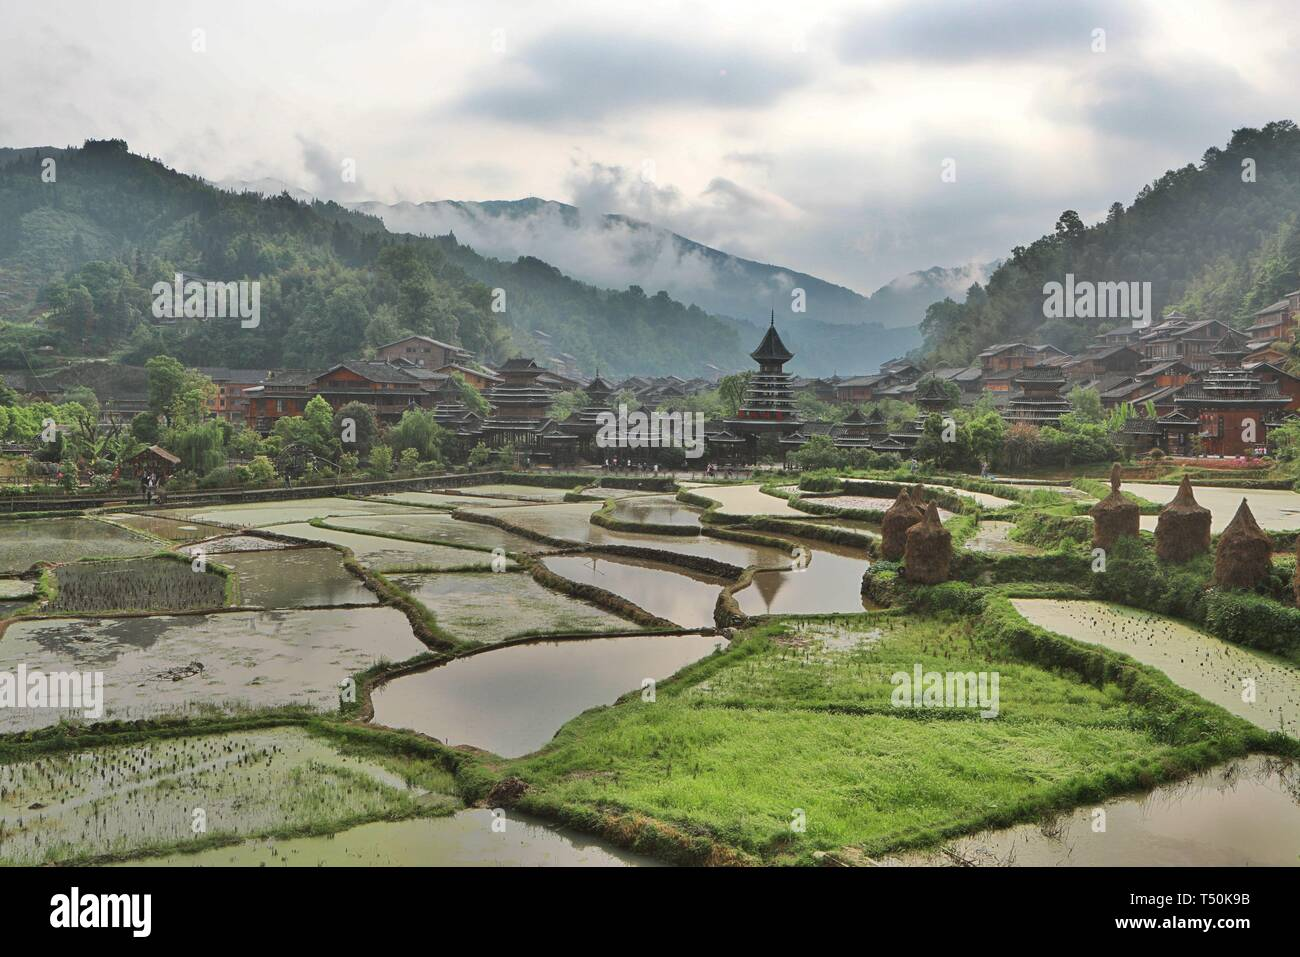 Liping. 20th Apr, 2019. Photo taken on April 20, 2019 shows the fog-shrouded Dong village of Zhaoxing, Liping County, southwest China's Guizhou Province. Credit: Ou Dongqu/Xinhua/Alamy Live News Stock Photo